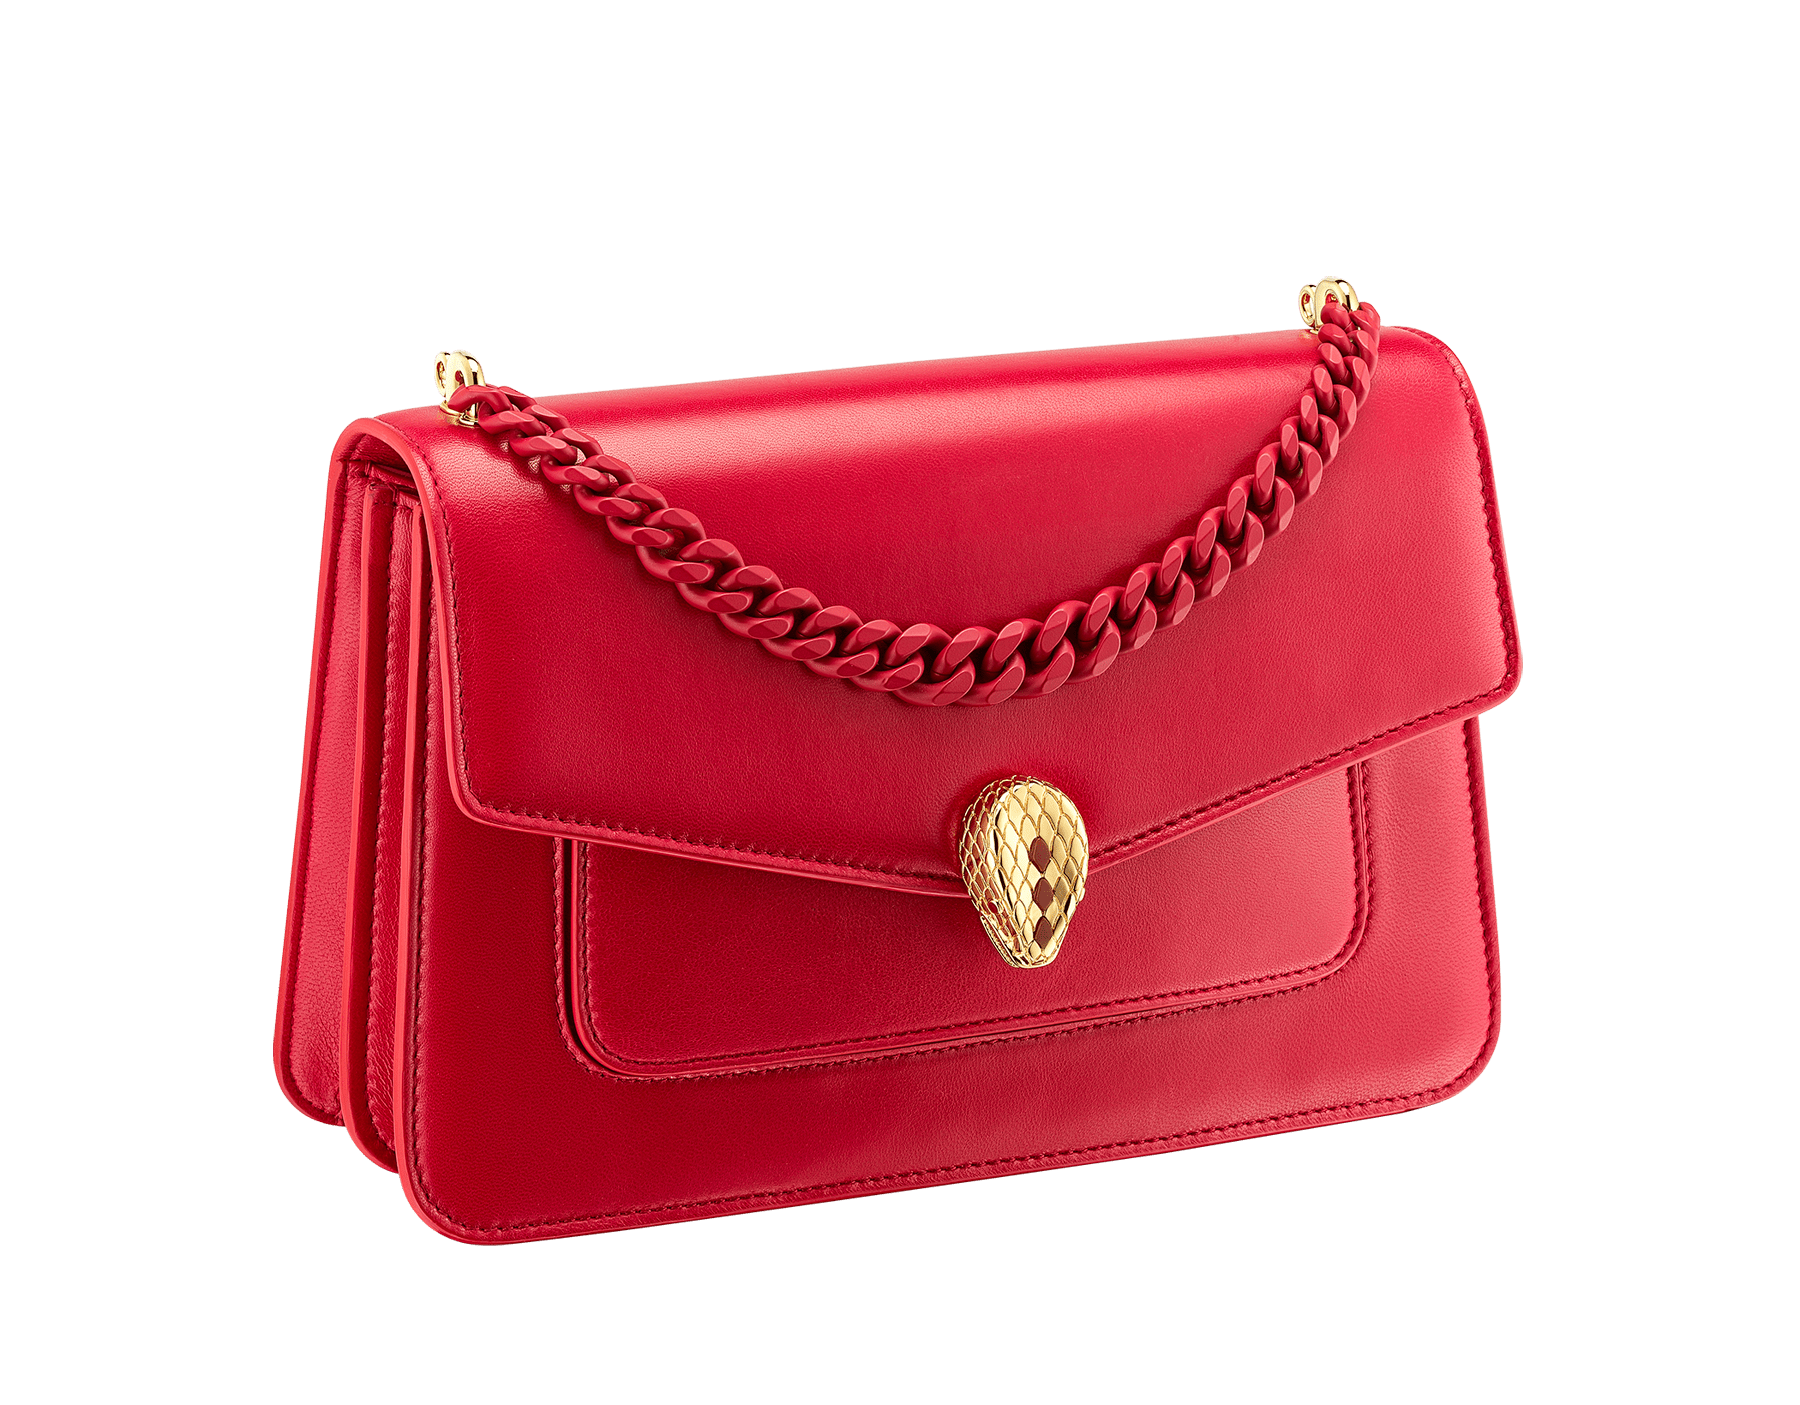 """Serpenti Forever"" maxi chain crossbody bag in Amaranth Garnet red nappa leather, with Pink Spinel fuchsia nappa leather inner lining. New Serpenti head closure in gold-plated brass, finished with small red carnelian scales in the middle and red enamel eyes. 1138-MCN image 3"